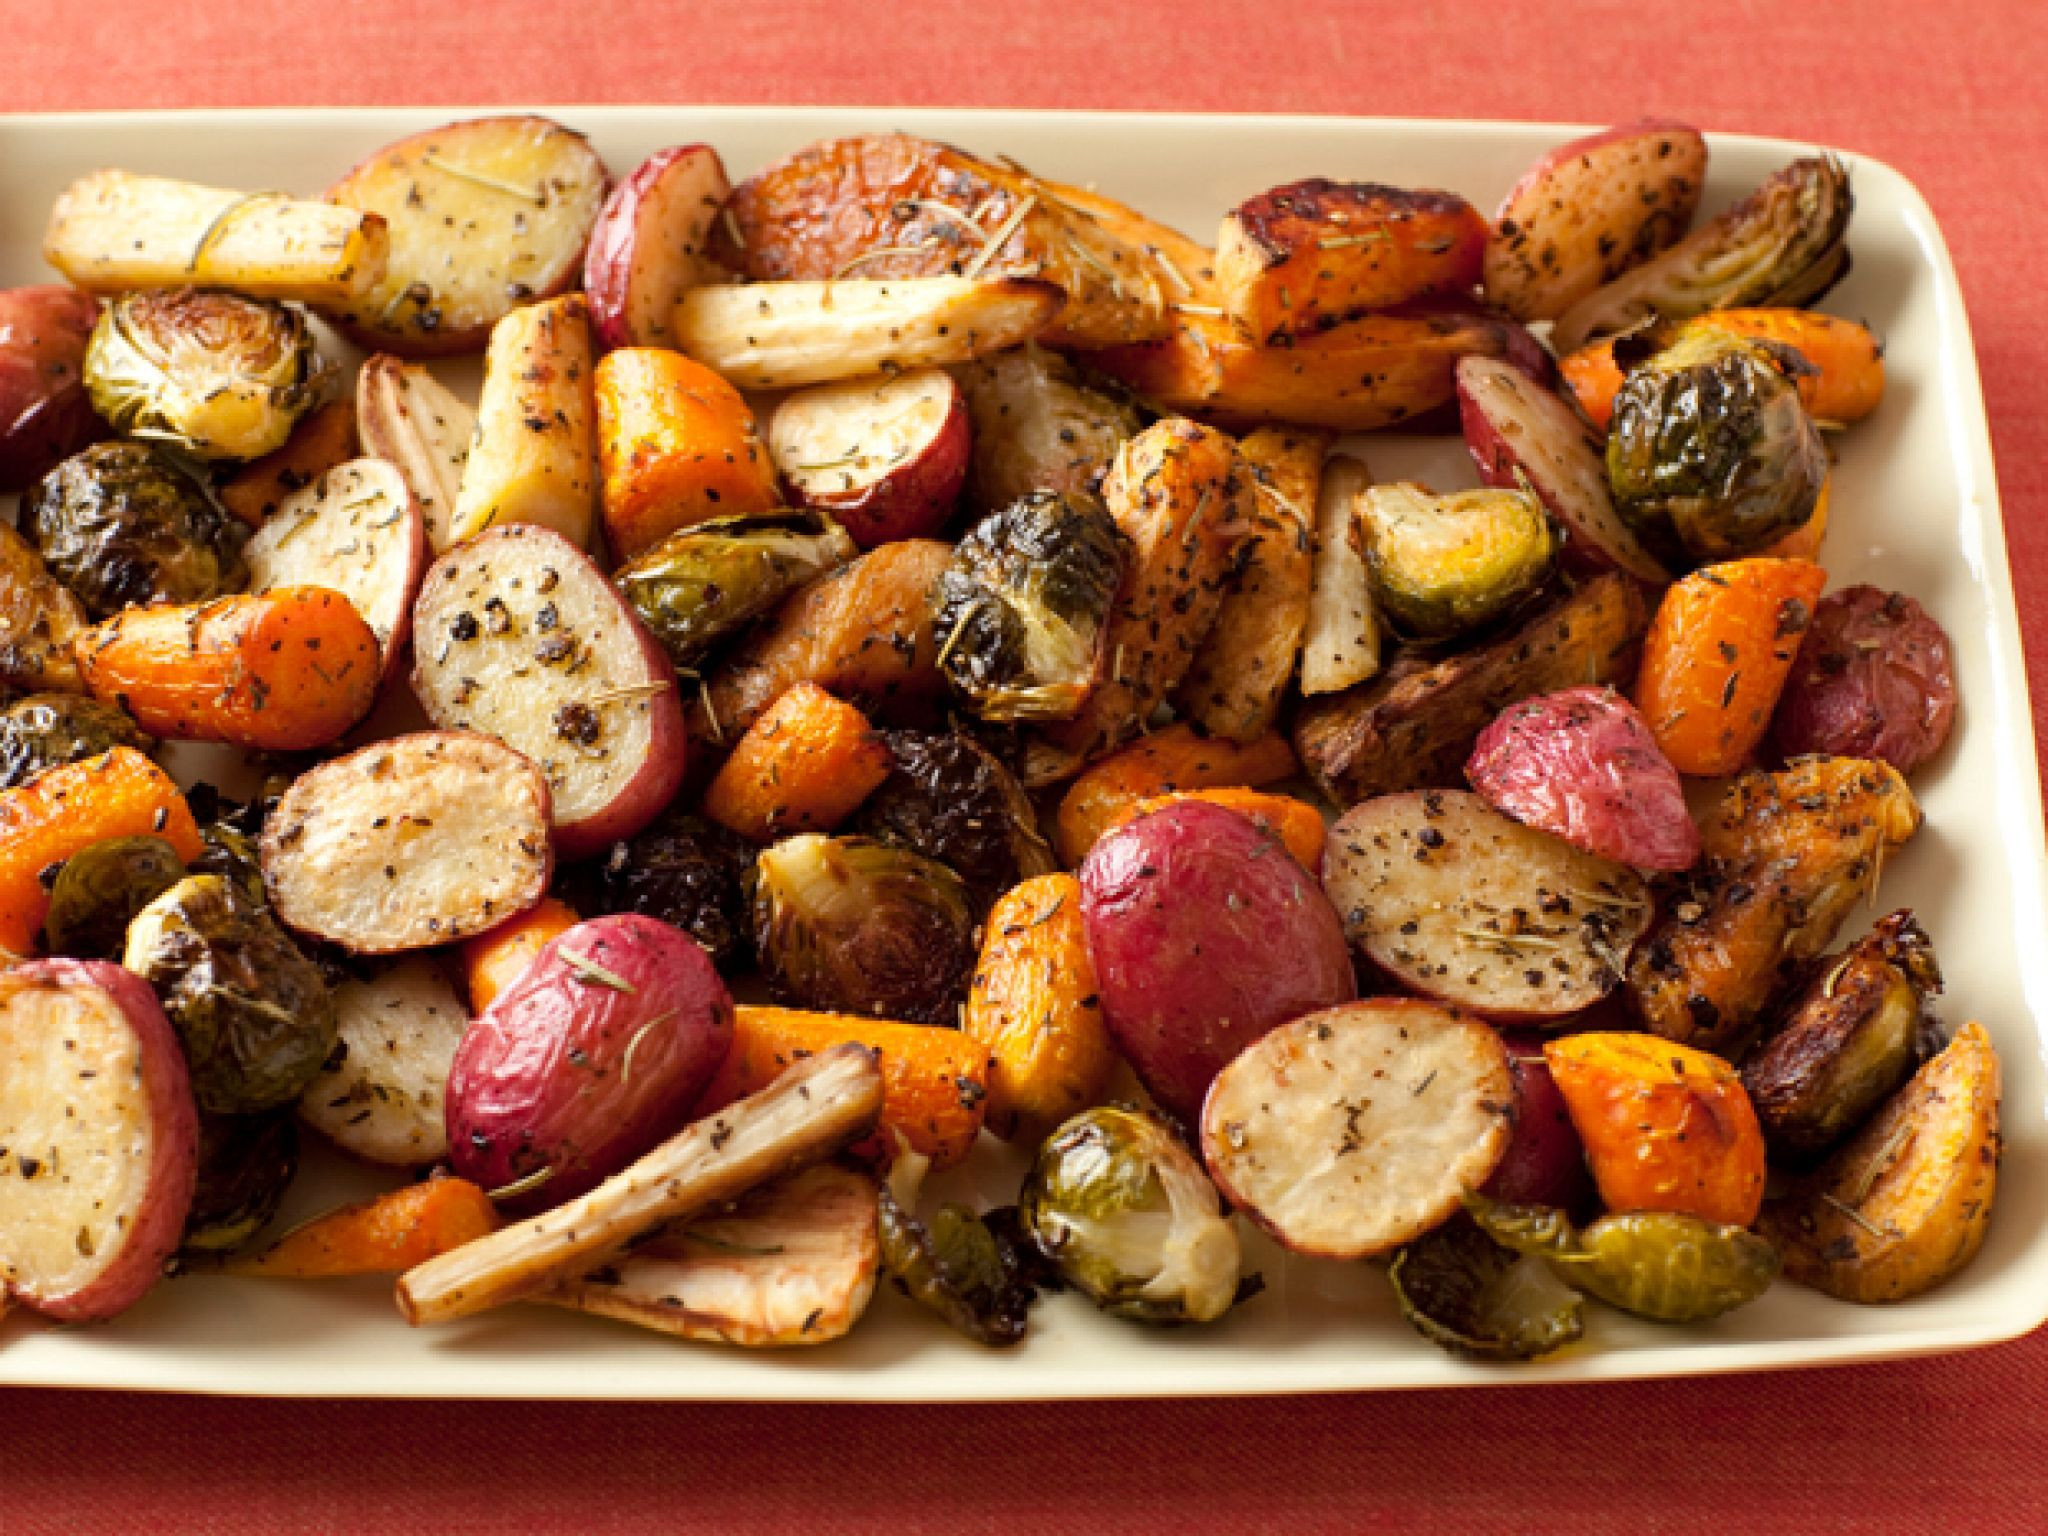 Roasted Vegetables For Thanksgiving  100 Classic Thanksgiving Side Dish Recipes Food Network